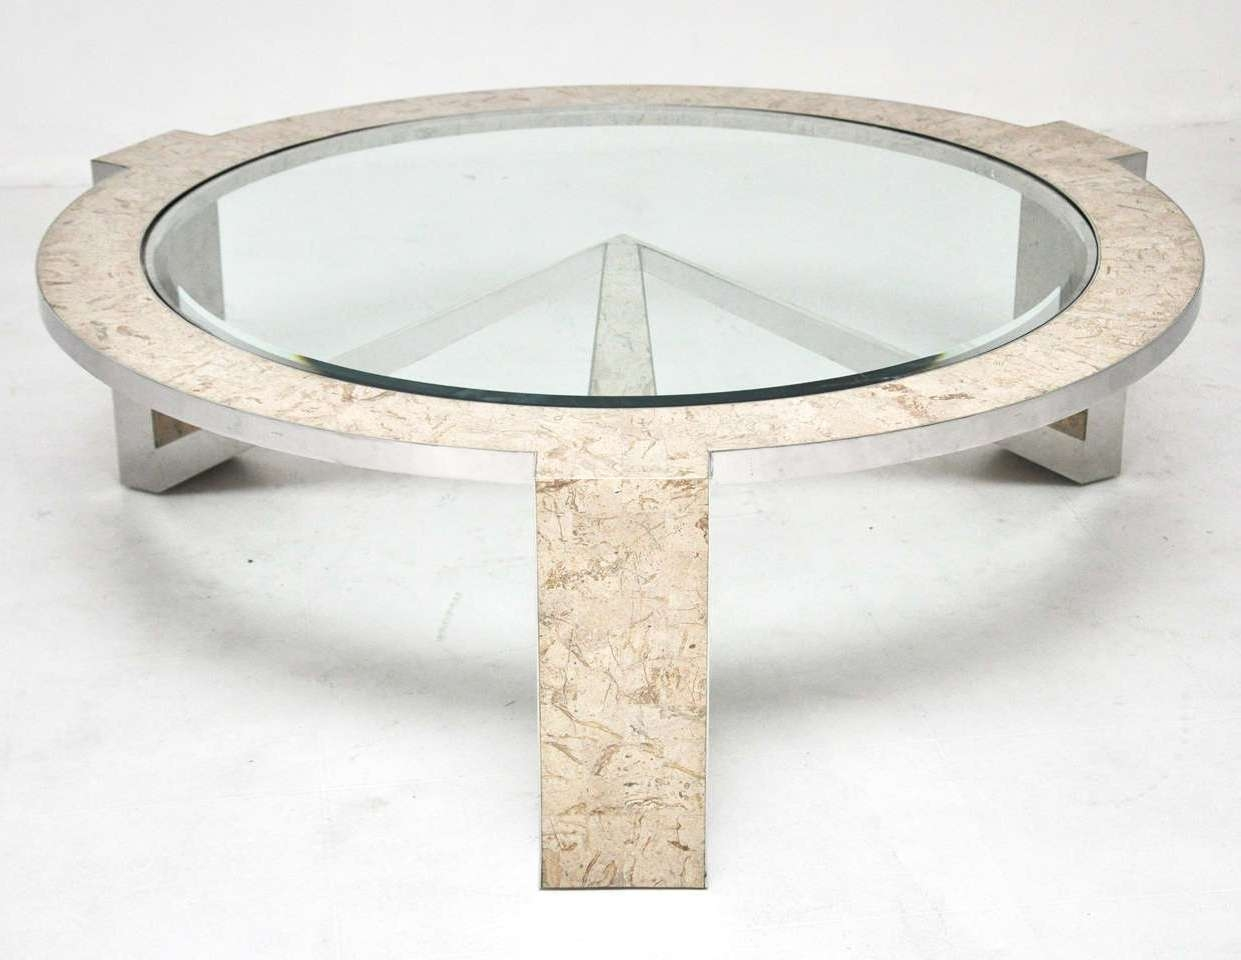 Classy Stone And Glass Coffee Tables For Home Interior Design With Regard To Latest Stone And Glass Coffee Tables (View 1 of 20)